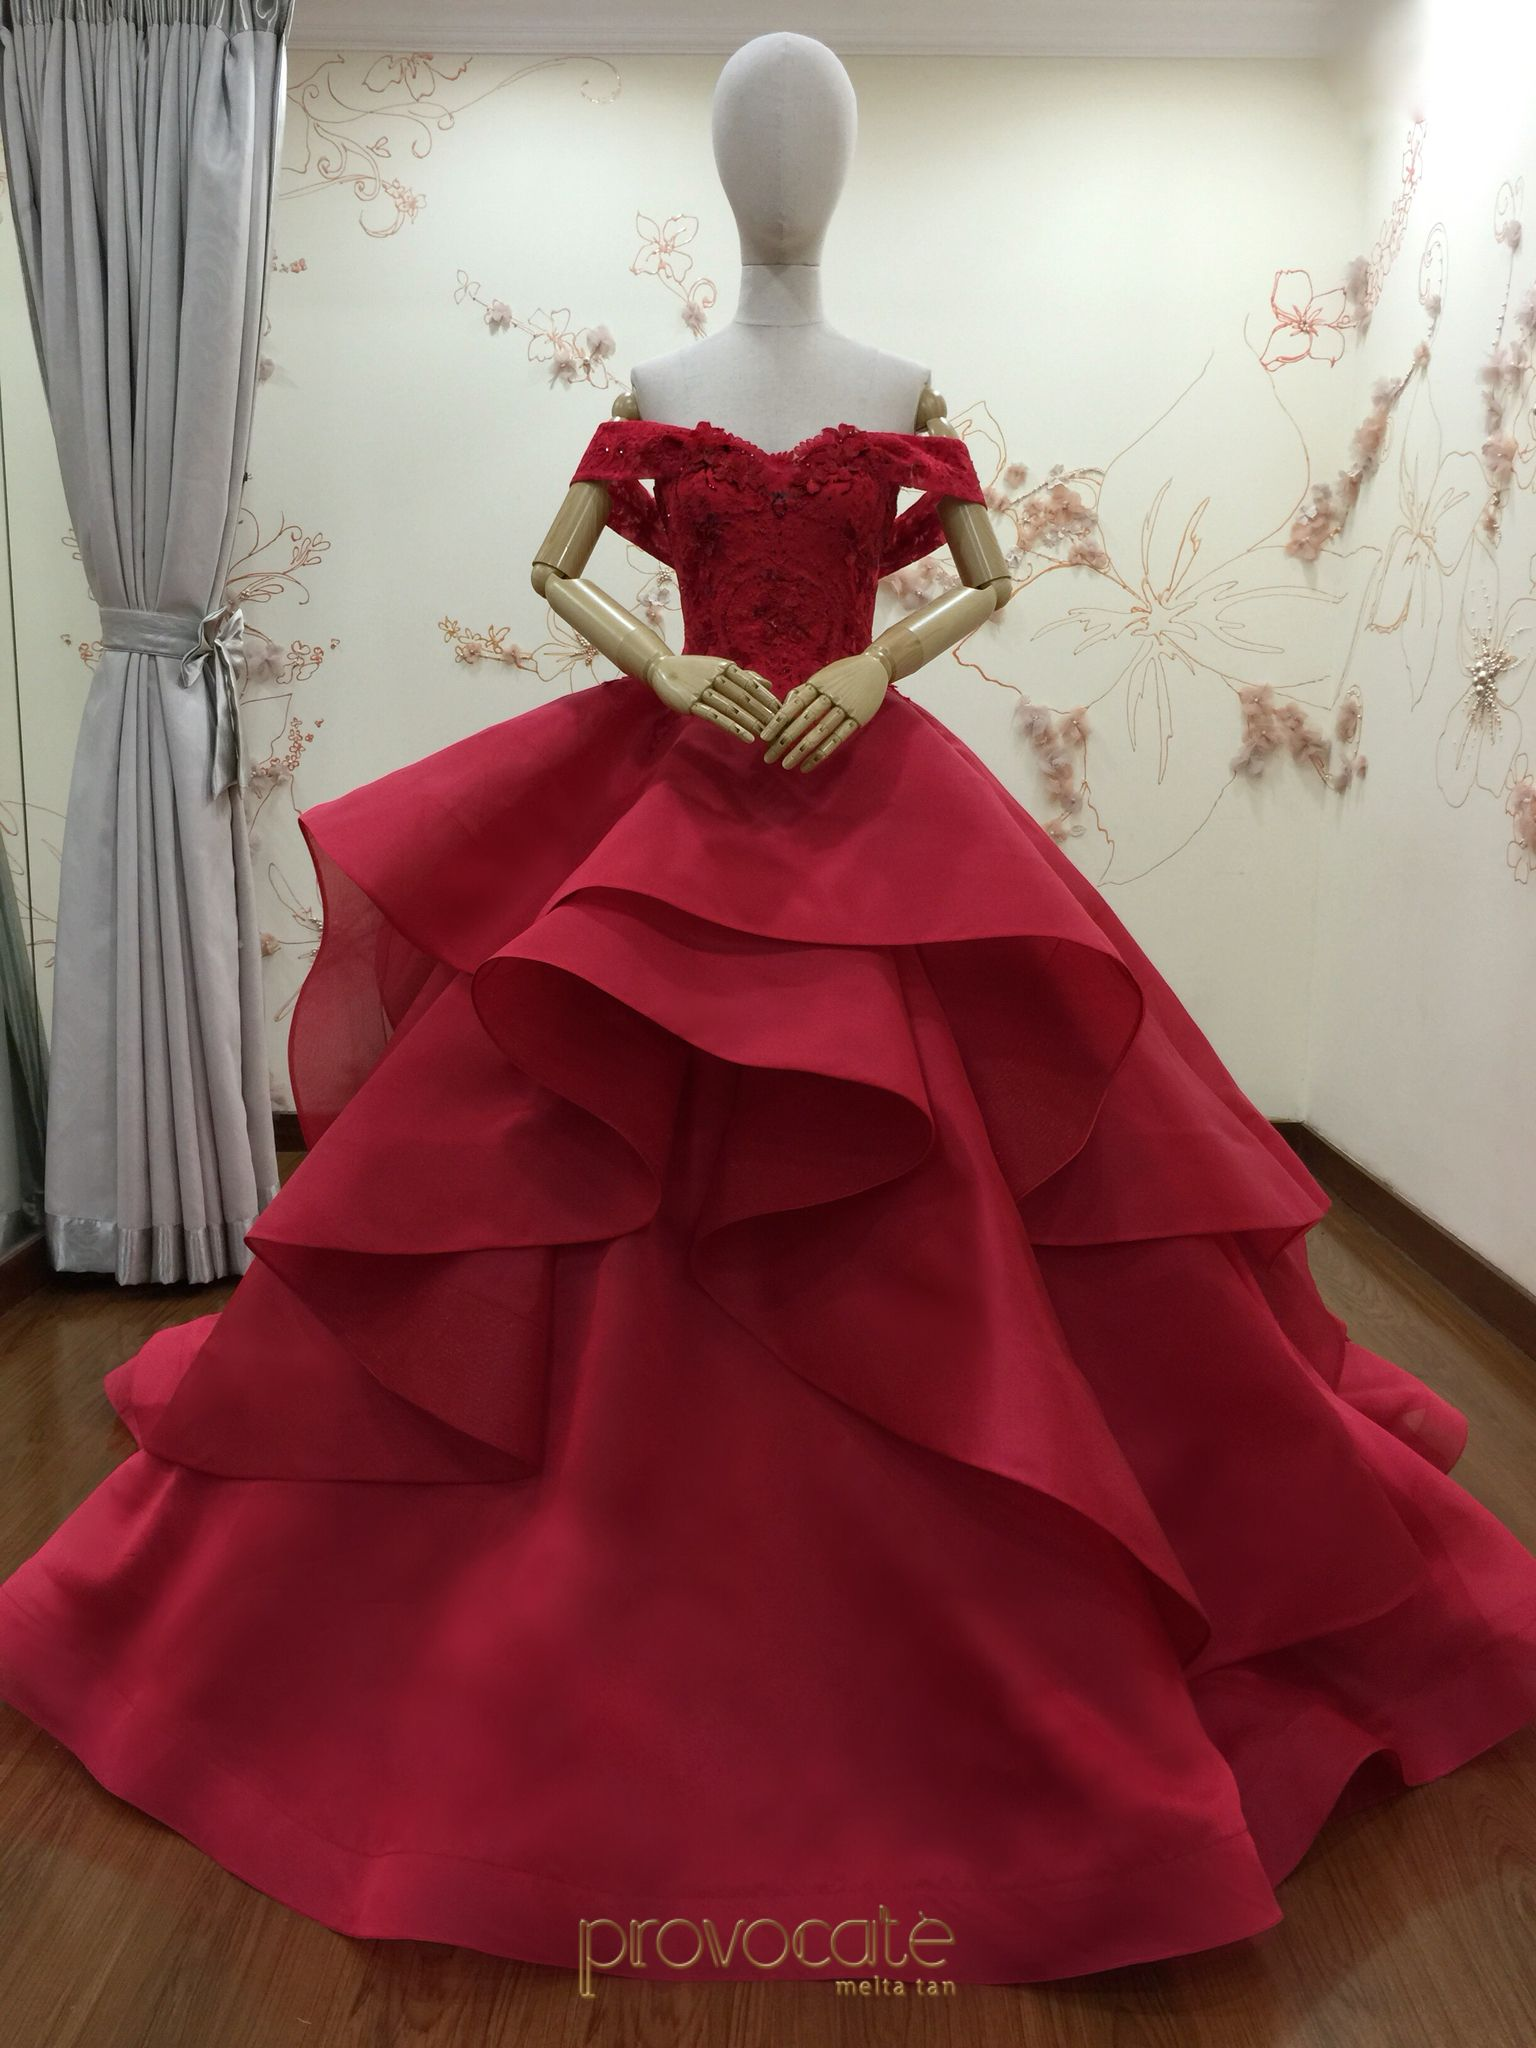 Fairytale off shoulder royal red ball gown. | Tomboy as Audrey ...